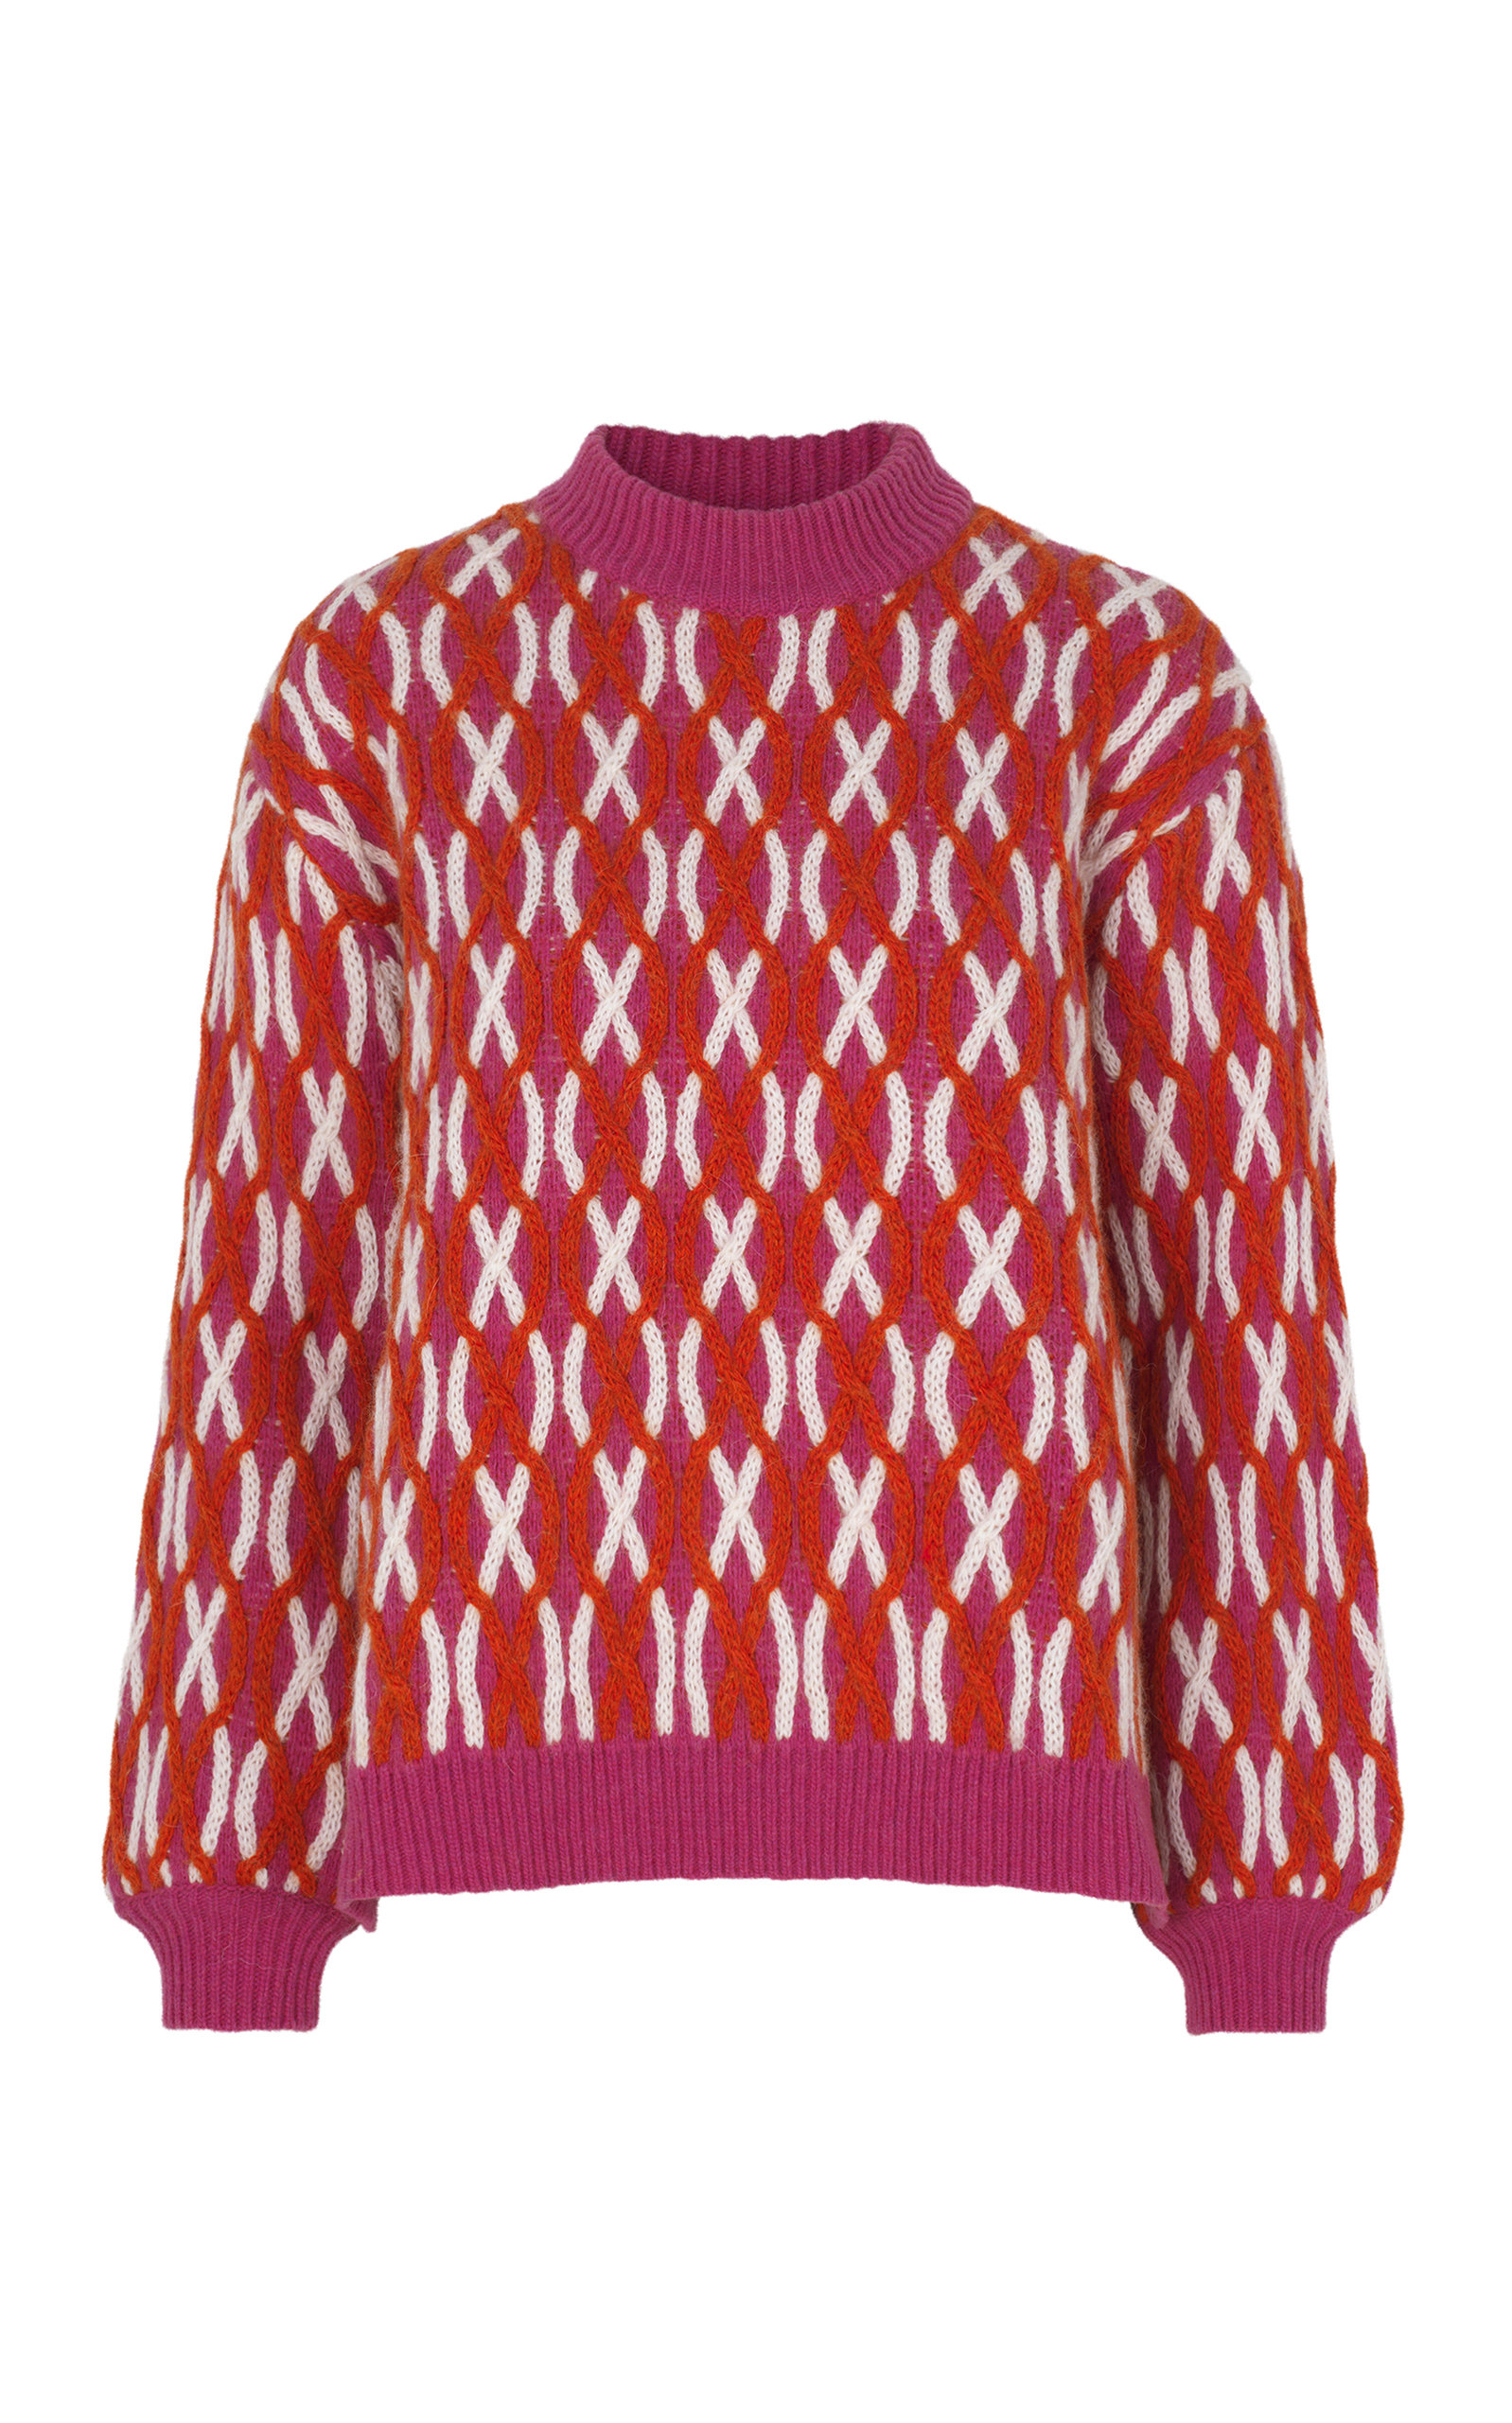 be43cc75ab1e98 Stine Goya Anders Cross Knit Sweater In Pink | ModeSens